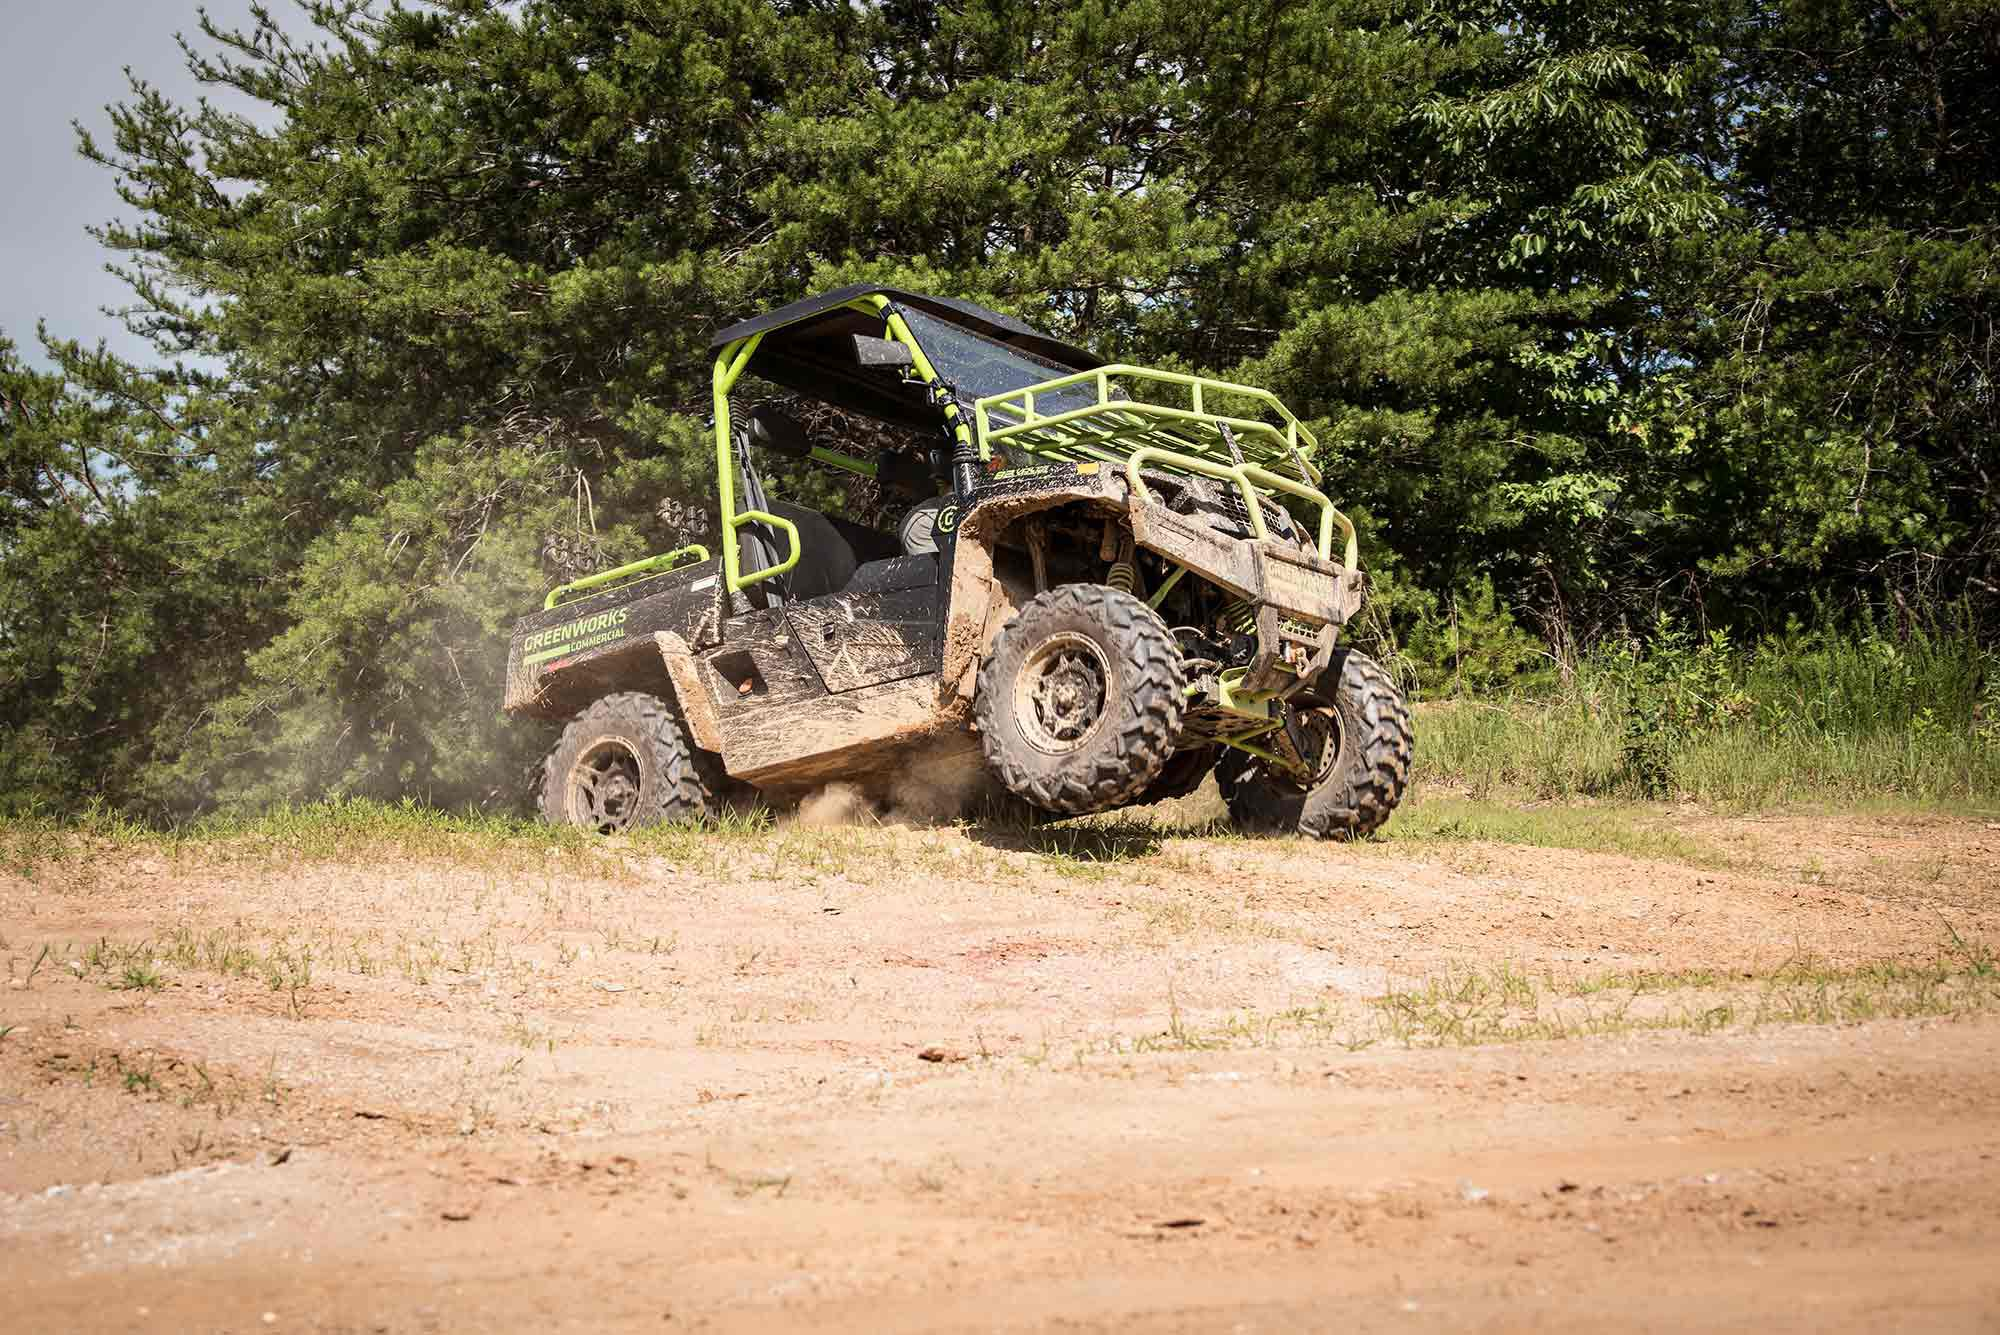 Don't let the battery pack fool you. This is a real UTV.